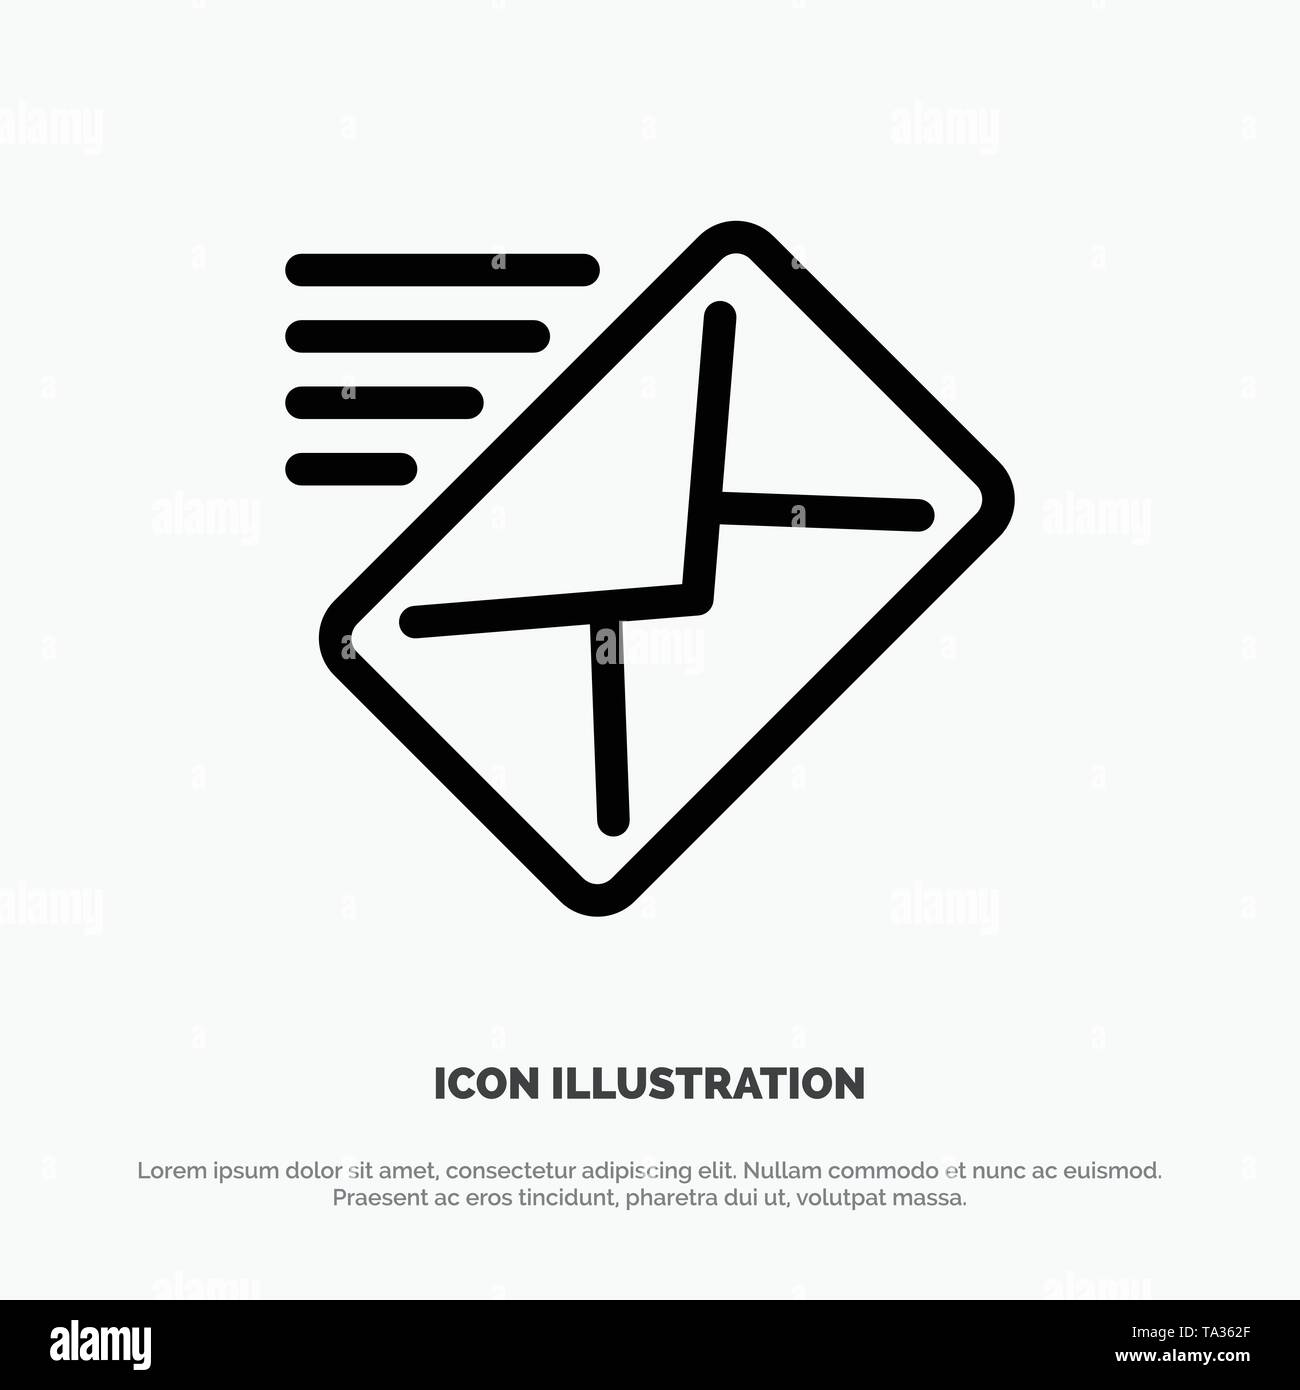 Email, Mail, Message, Sent Line Icon Vector - Stock Image